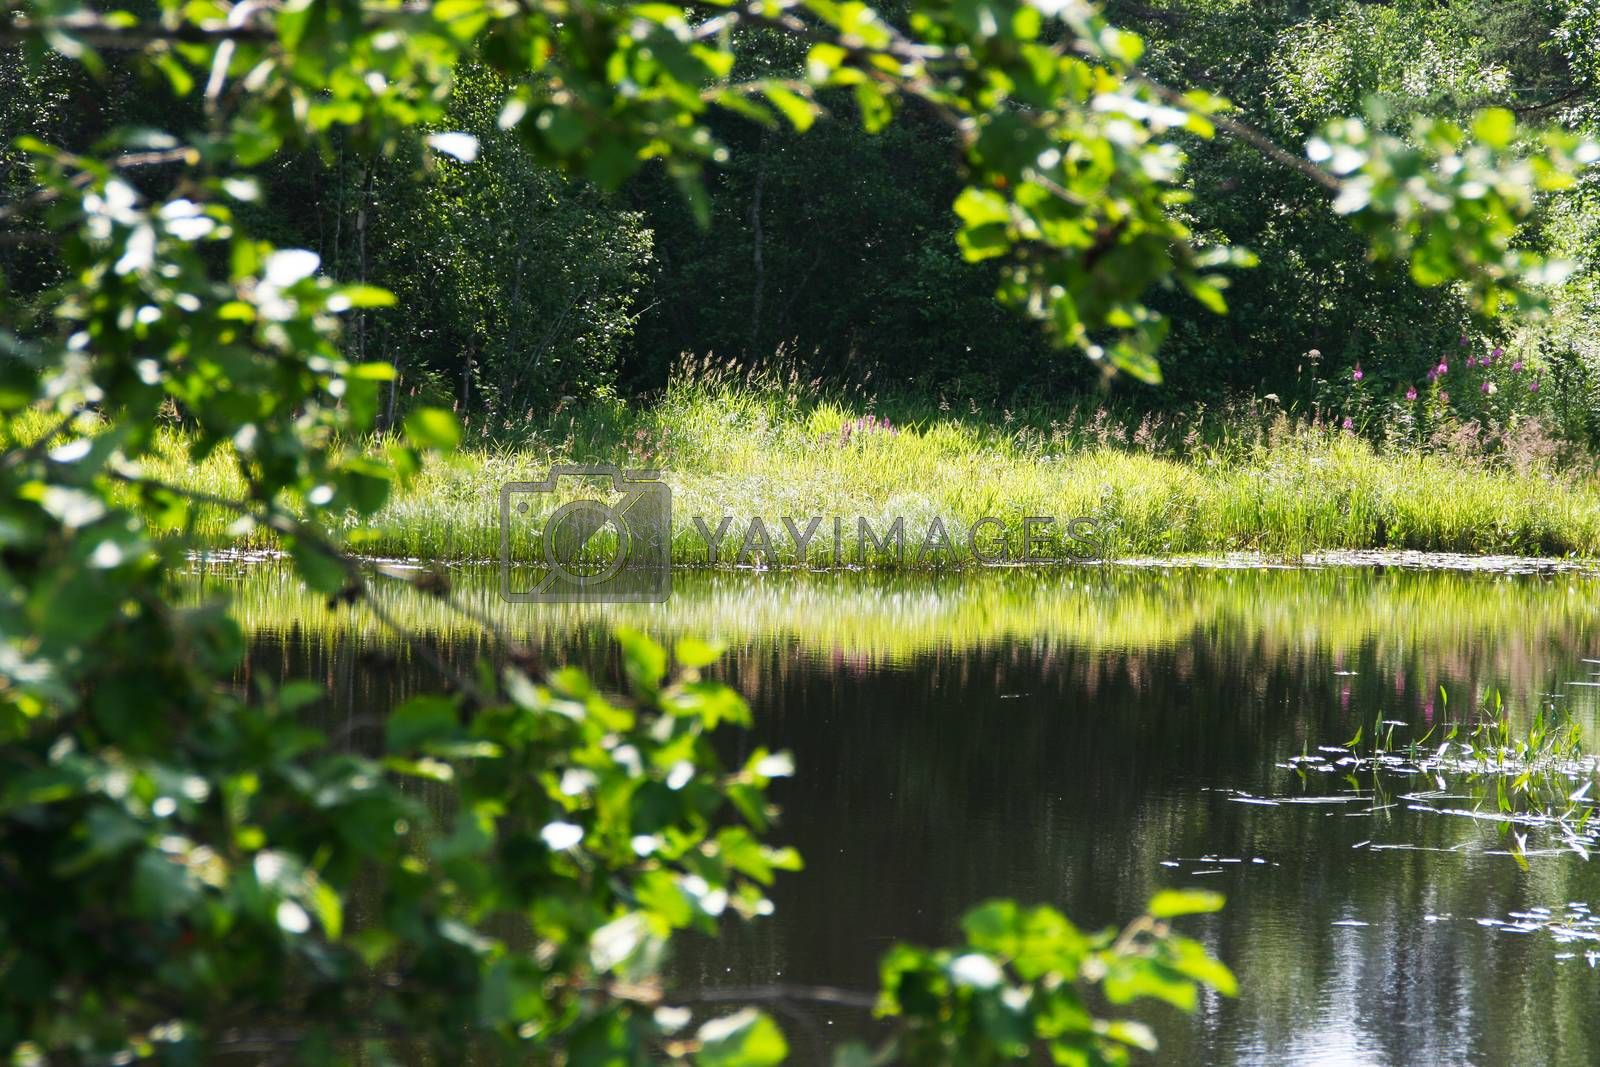 Trees with flowers are reflected in the waters of the forest lake.